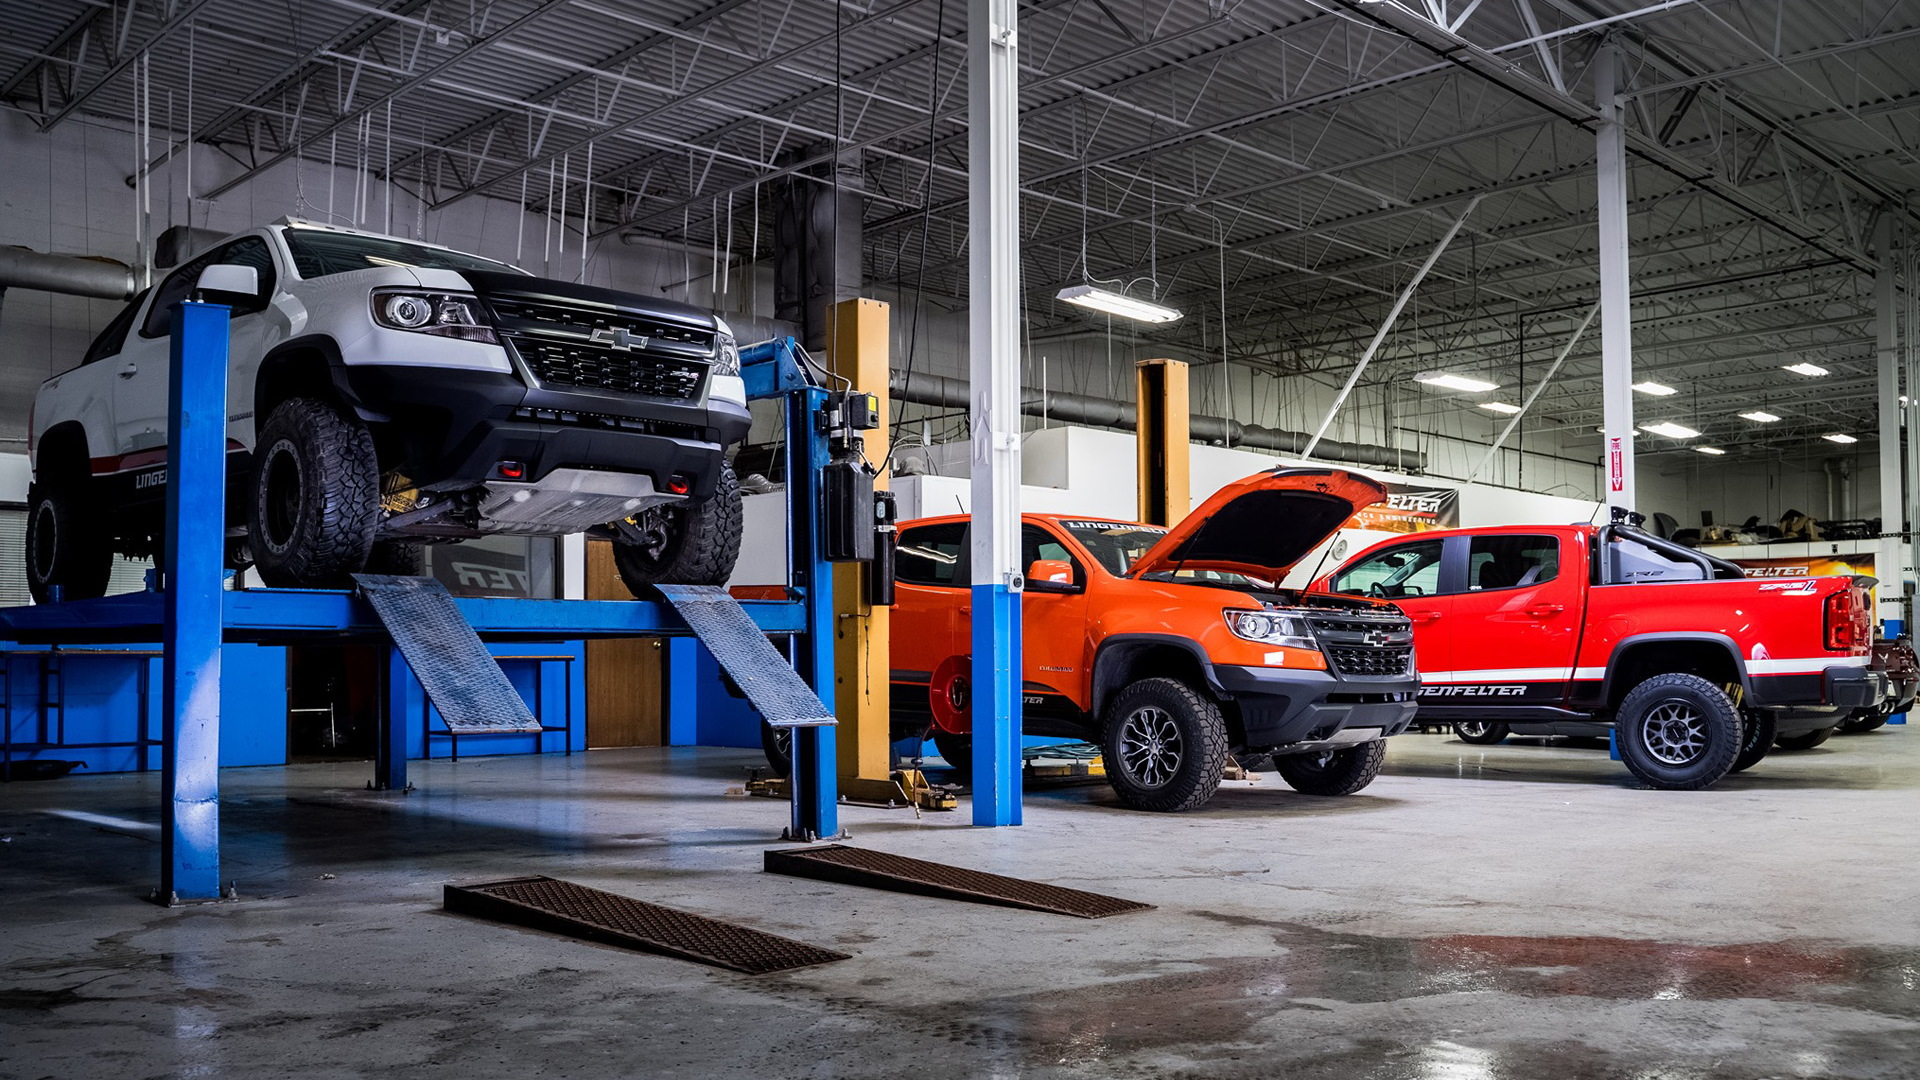 Chevrolet Colorado pickup trucks being worked on at Lingenfelter